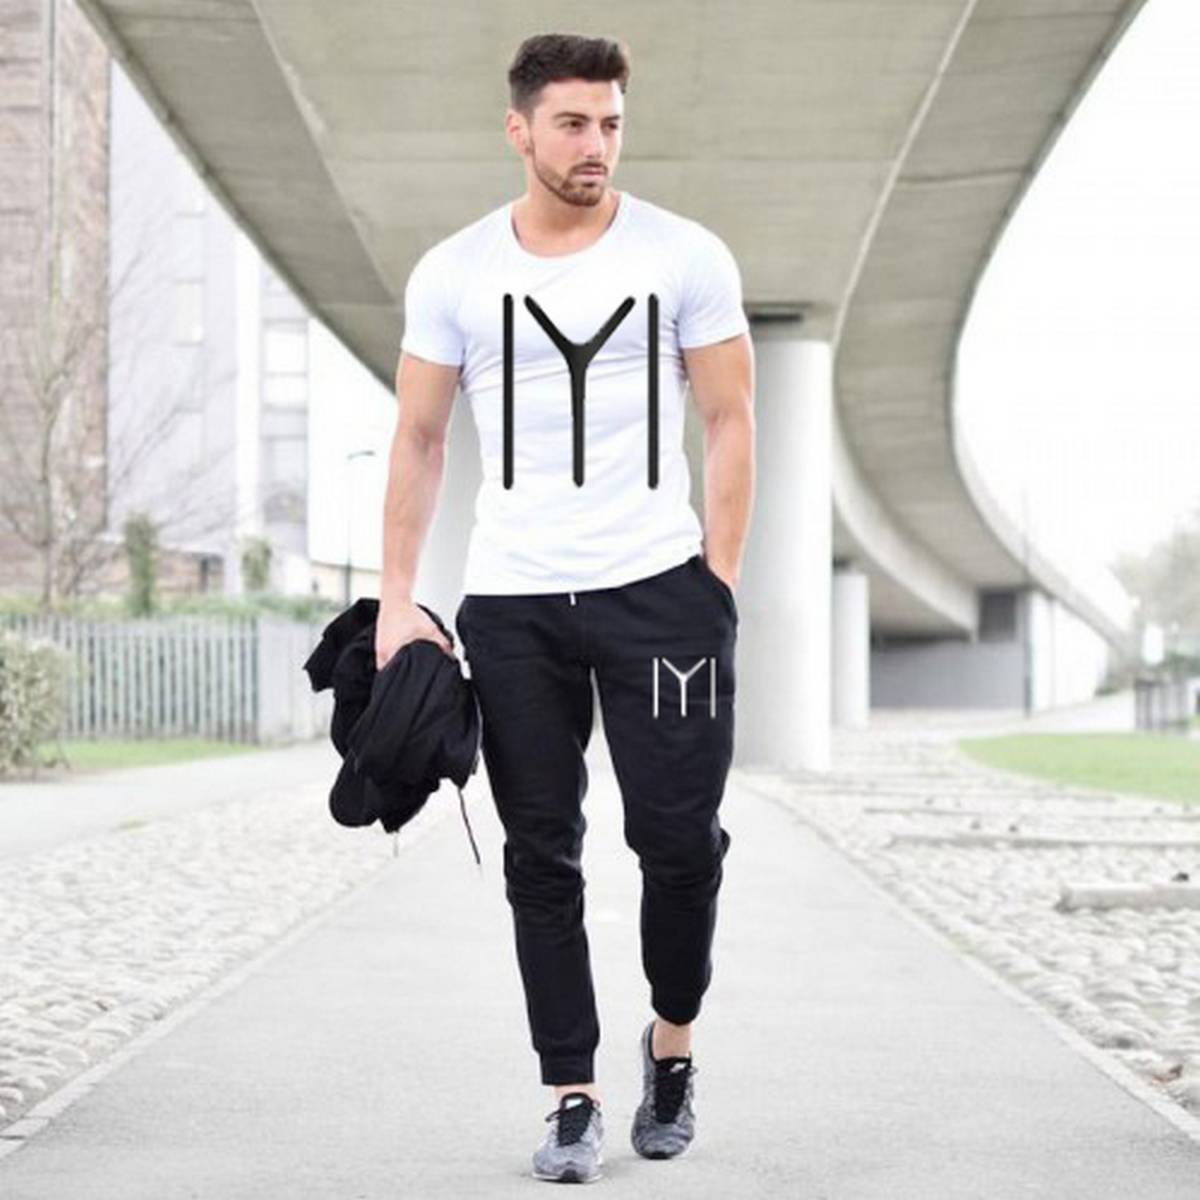 Kayi Men stylish T shirt and trouser Gym wear and comfortable